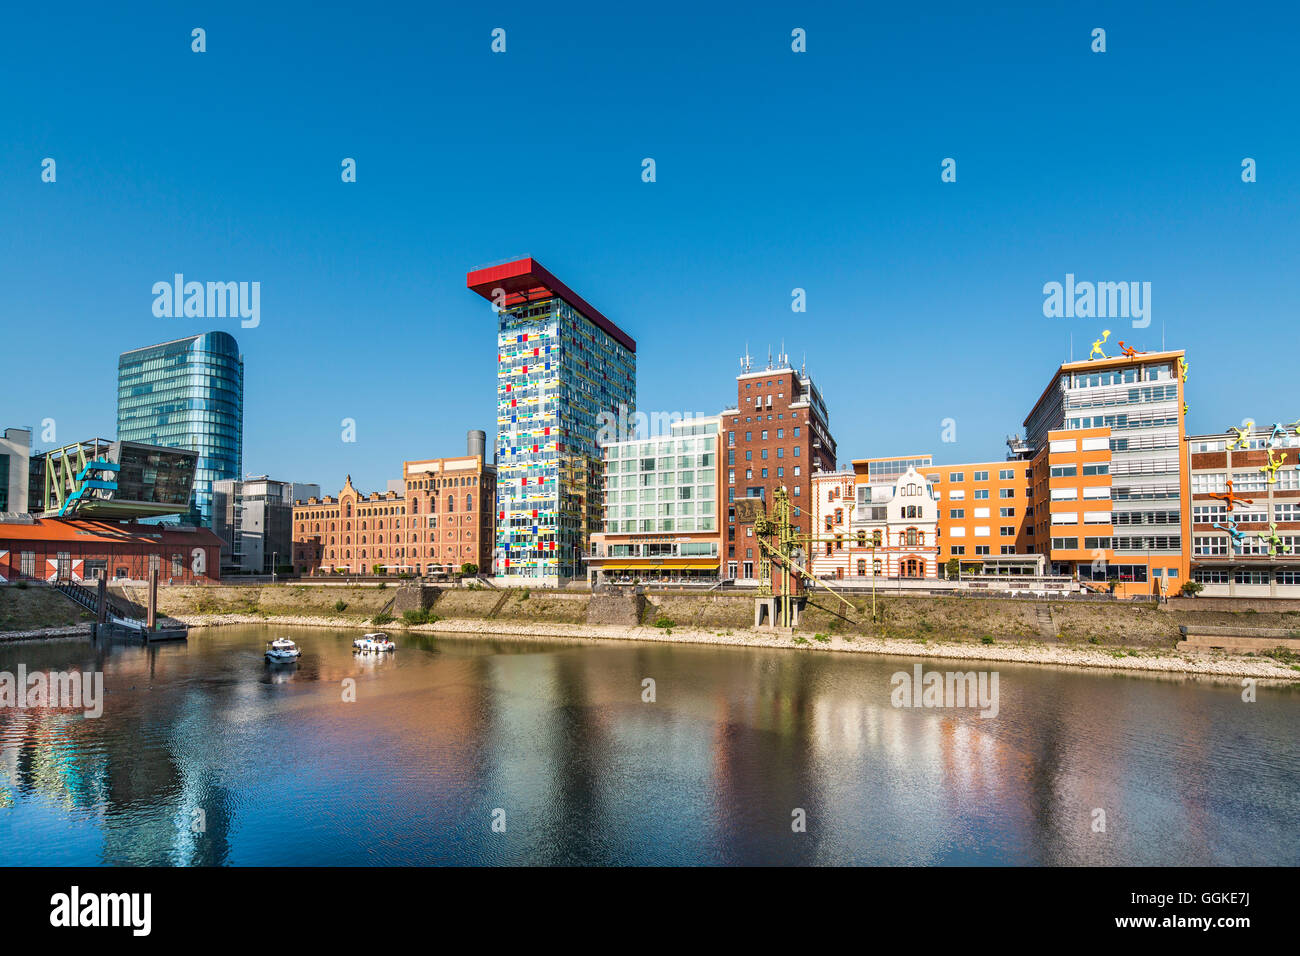 Media harbour, Duesseldorf, North Rhine Westphalia, Germany - Stock Image